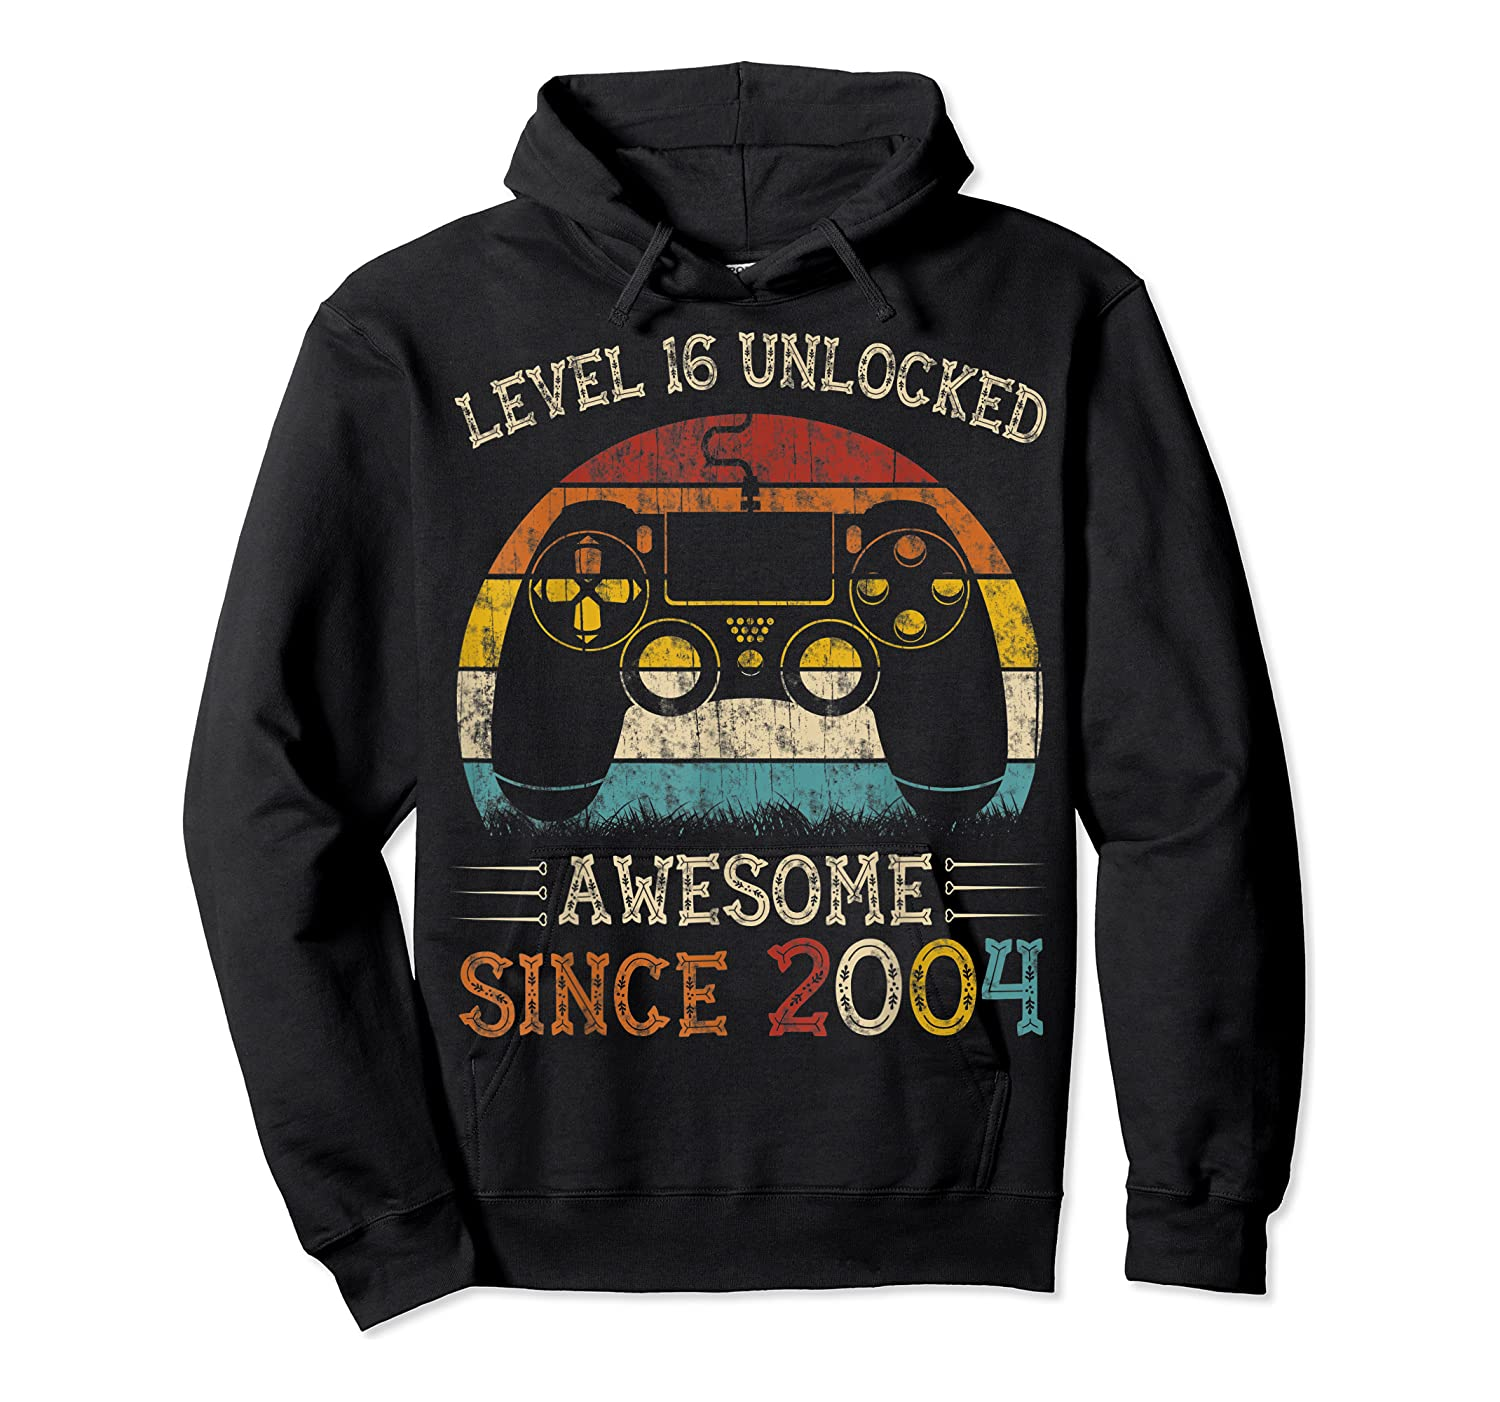 Vintage Video Level 16 Unlocked Gamers 16th Birthday Gifts Shirts Unisex Pullover Hoodie